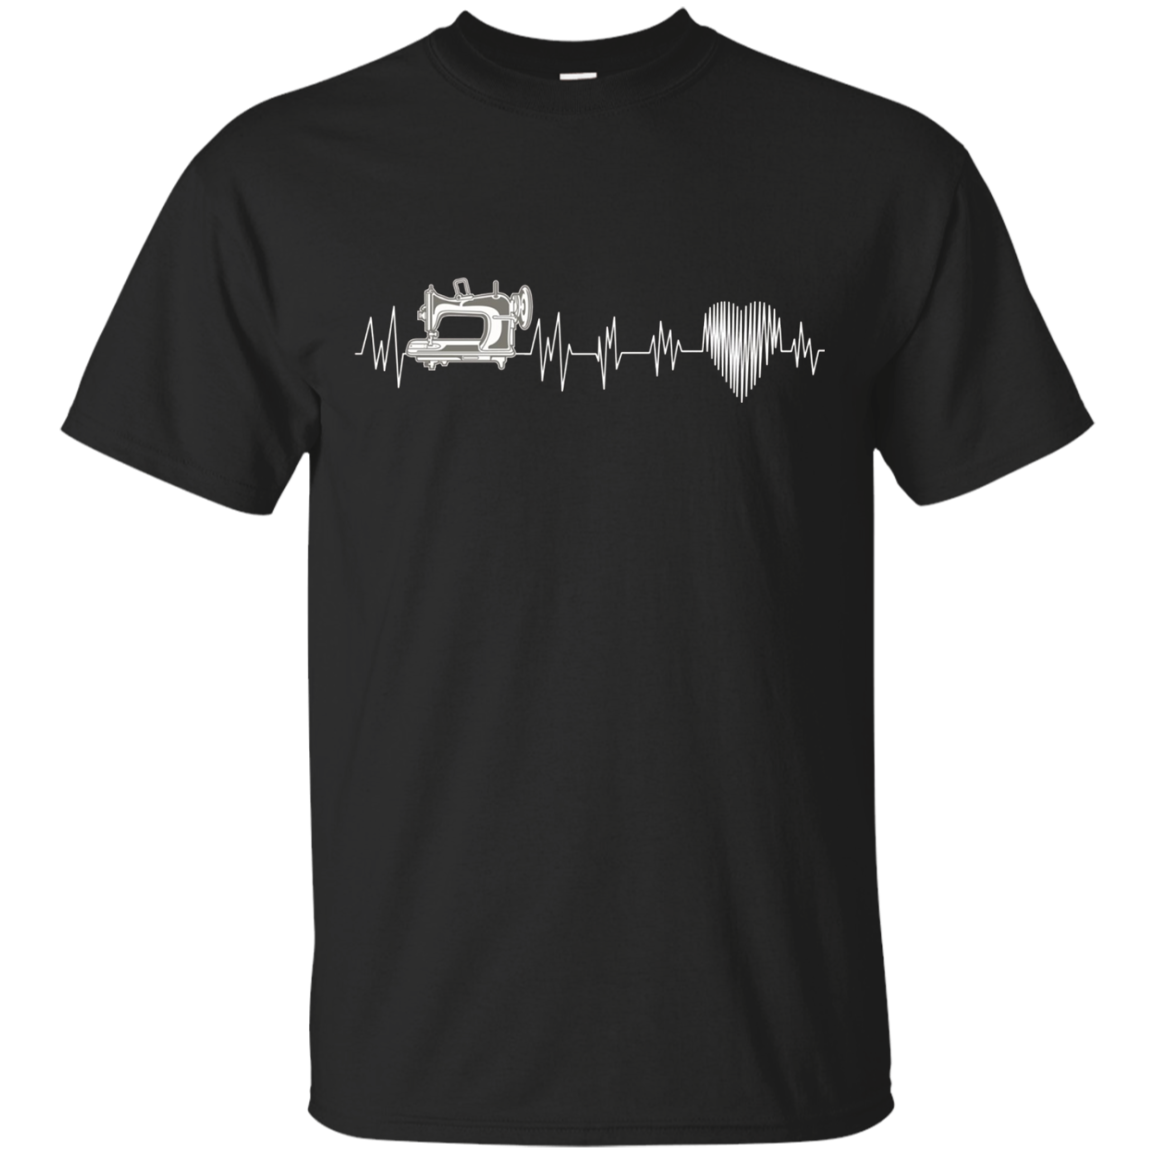 Womens Men heartbeat Hobbies Sewing Gift Idea Shirts